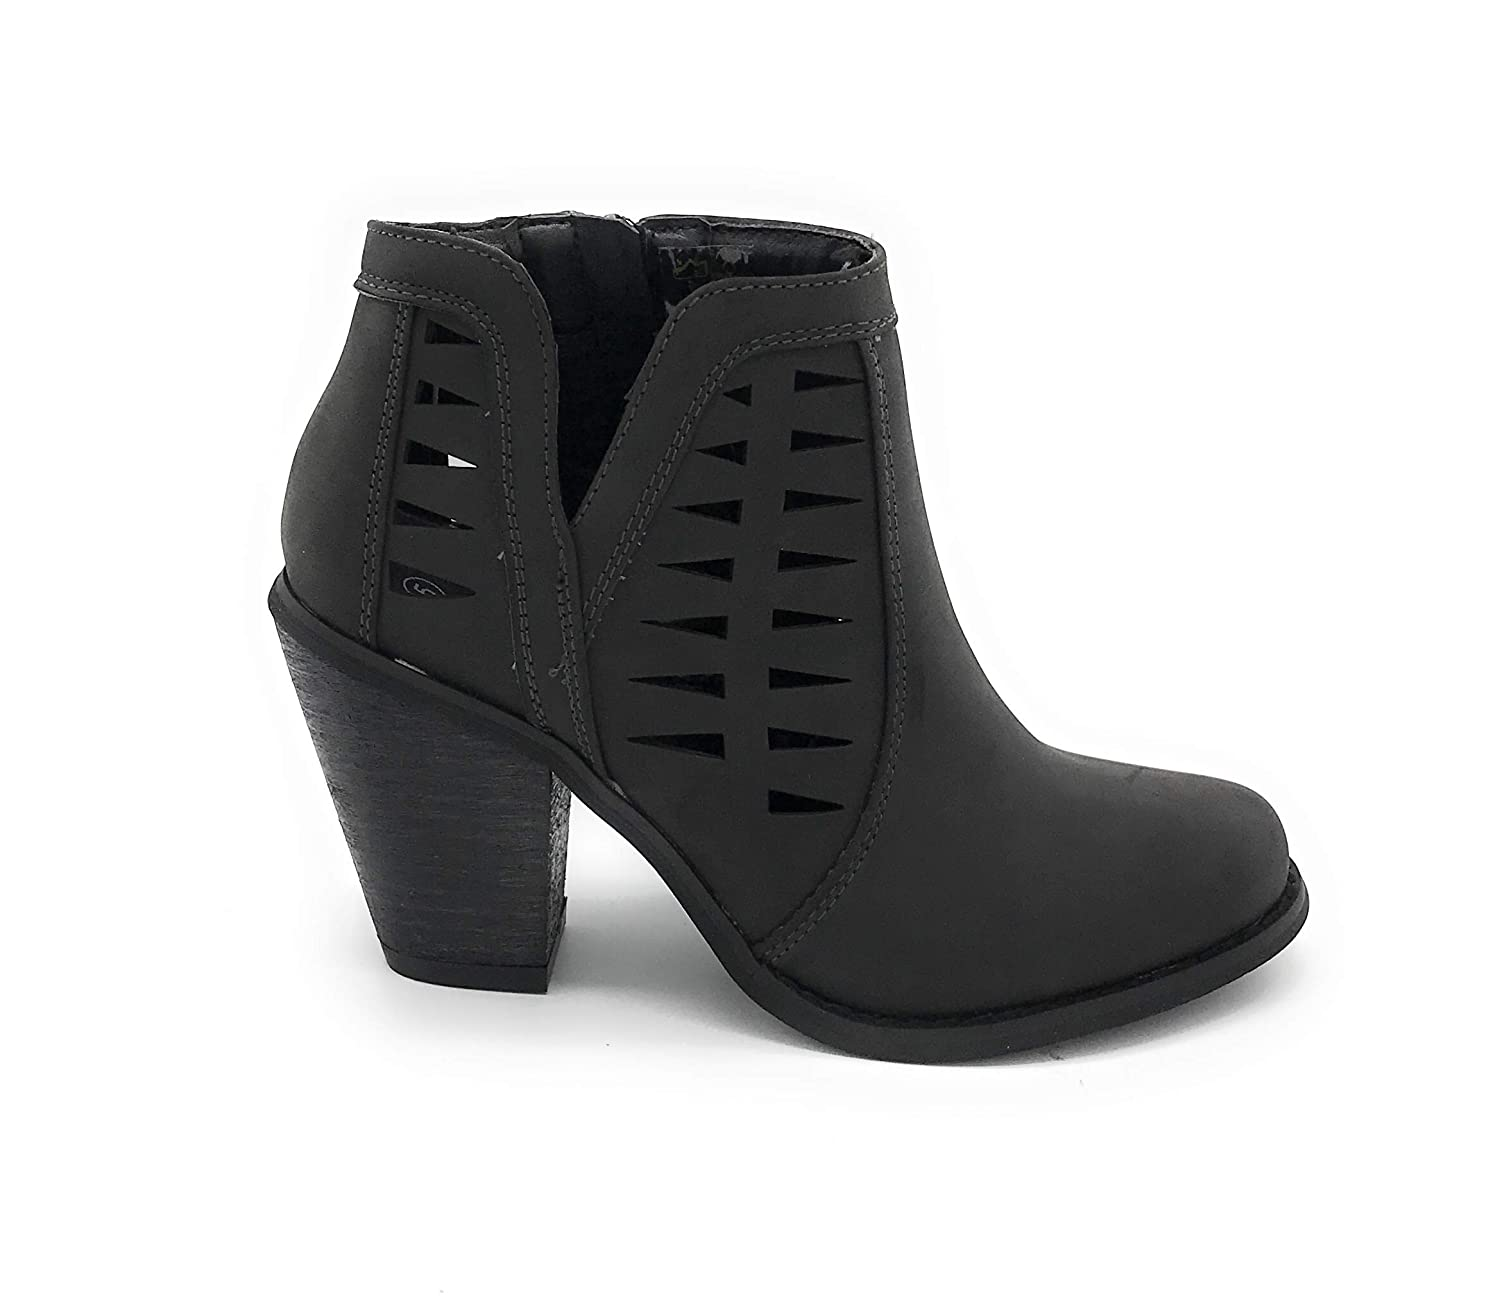 02black bluee Berry EASY21 Women Fashion Ankle Boots Casual Short Bootie shoes